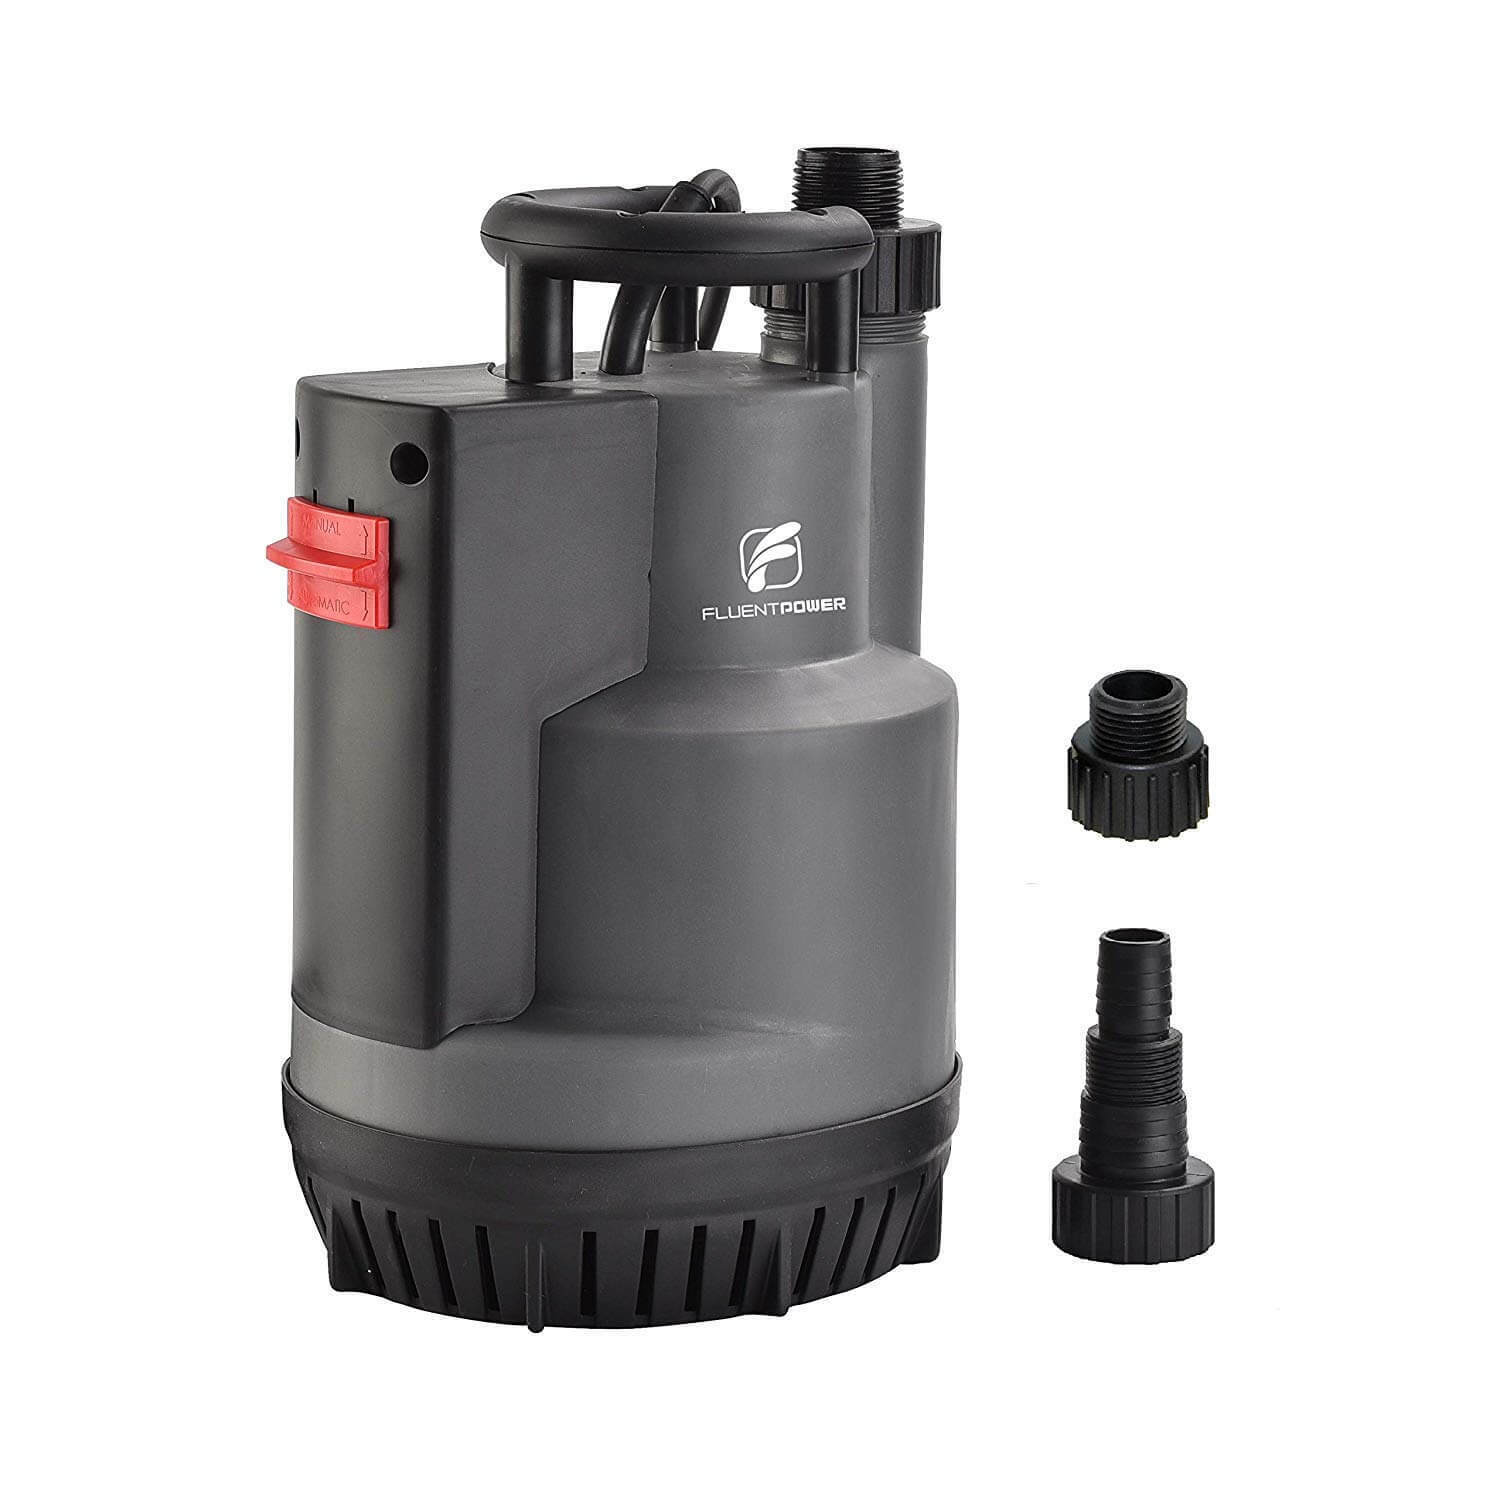 FLUENT POWER 1/2HP Automatic Submersible Water Pump Sump Pum